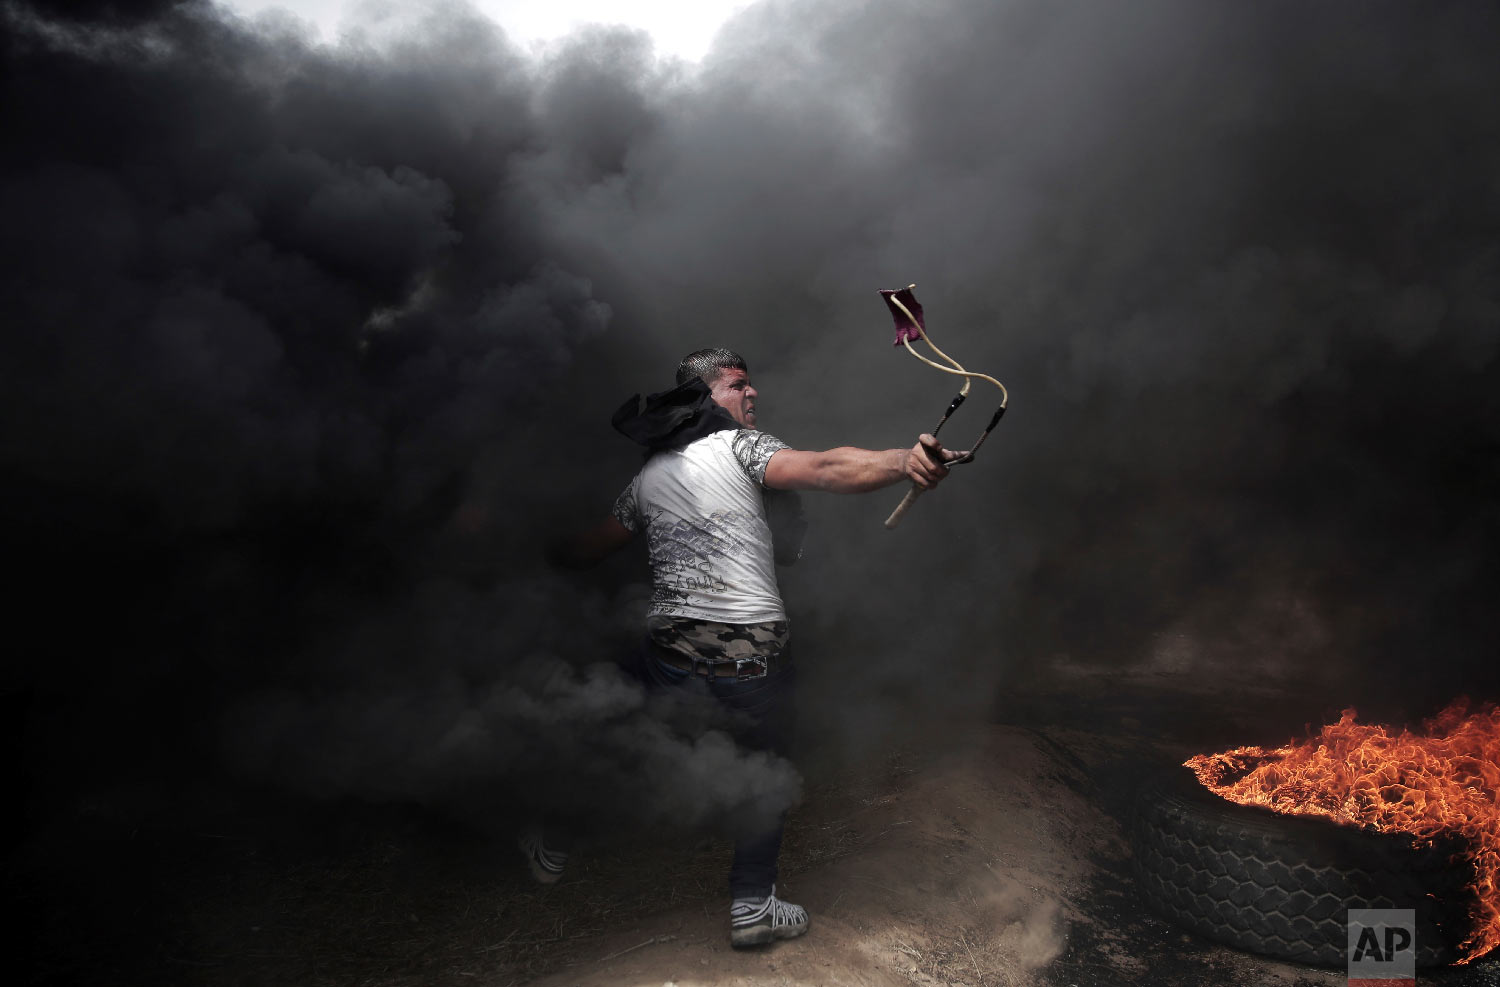 A Palestinian protester hurls stones at Israeli troops during a protest at the Gaza Strip's border with Israel, Friday, April 20, 2018.(AP Photo/ Khalil Hamra)